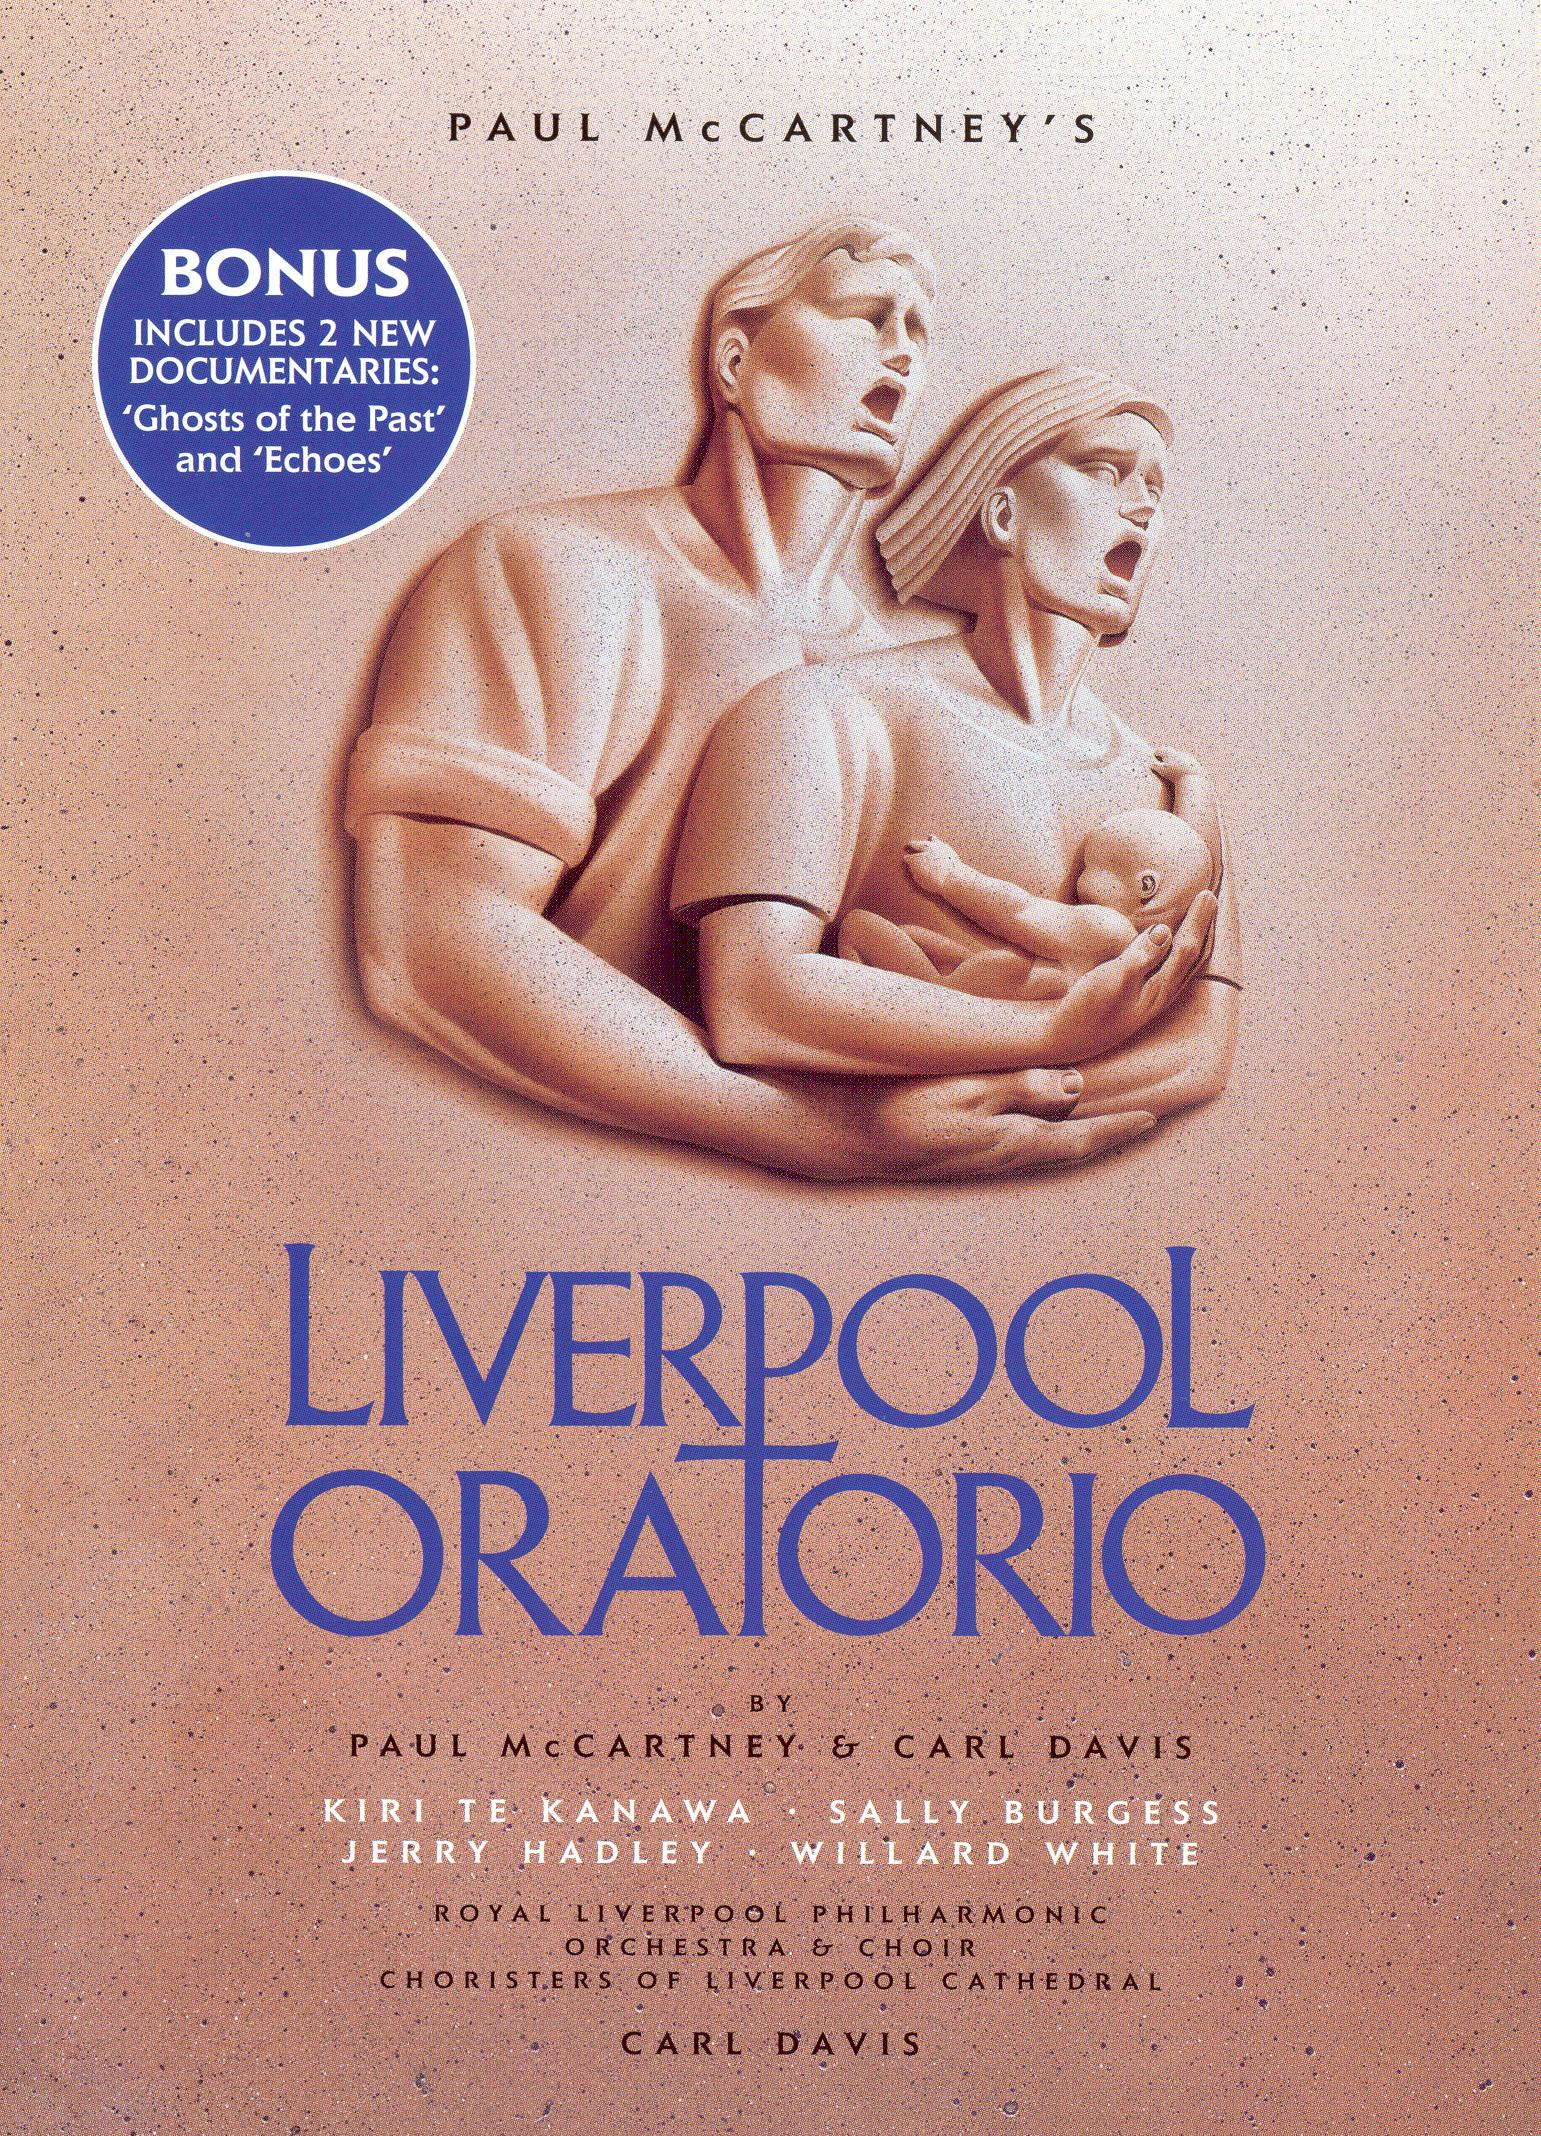 Paul McCartney: Liverpool Oratorio